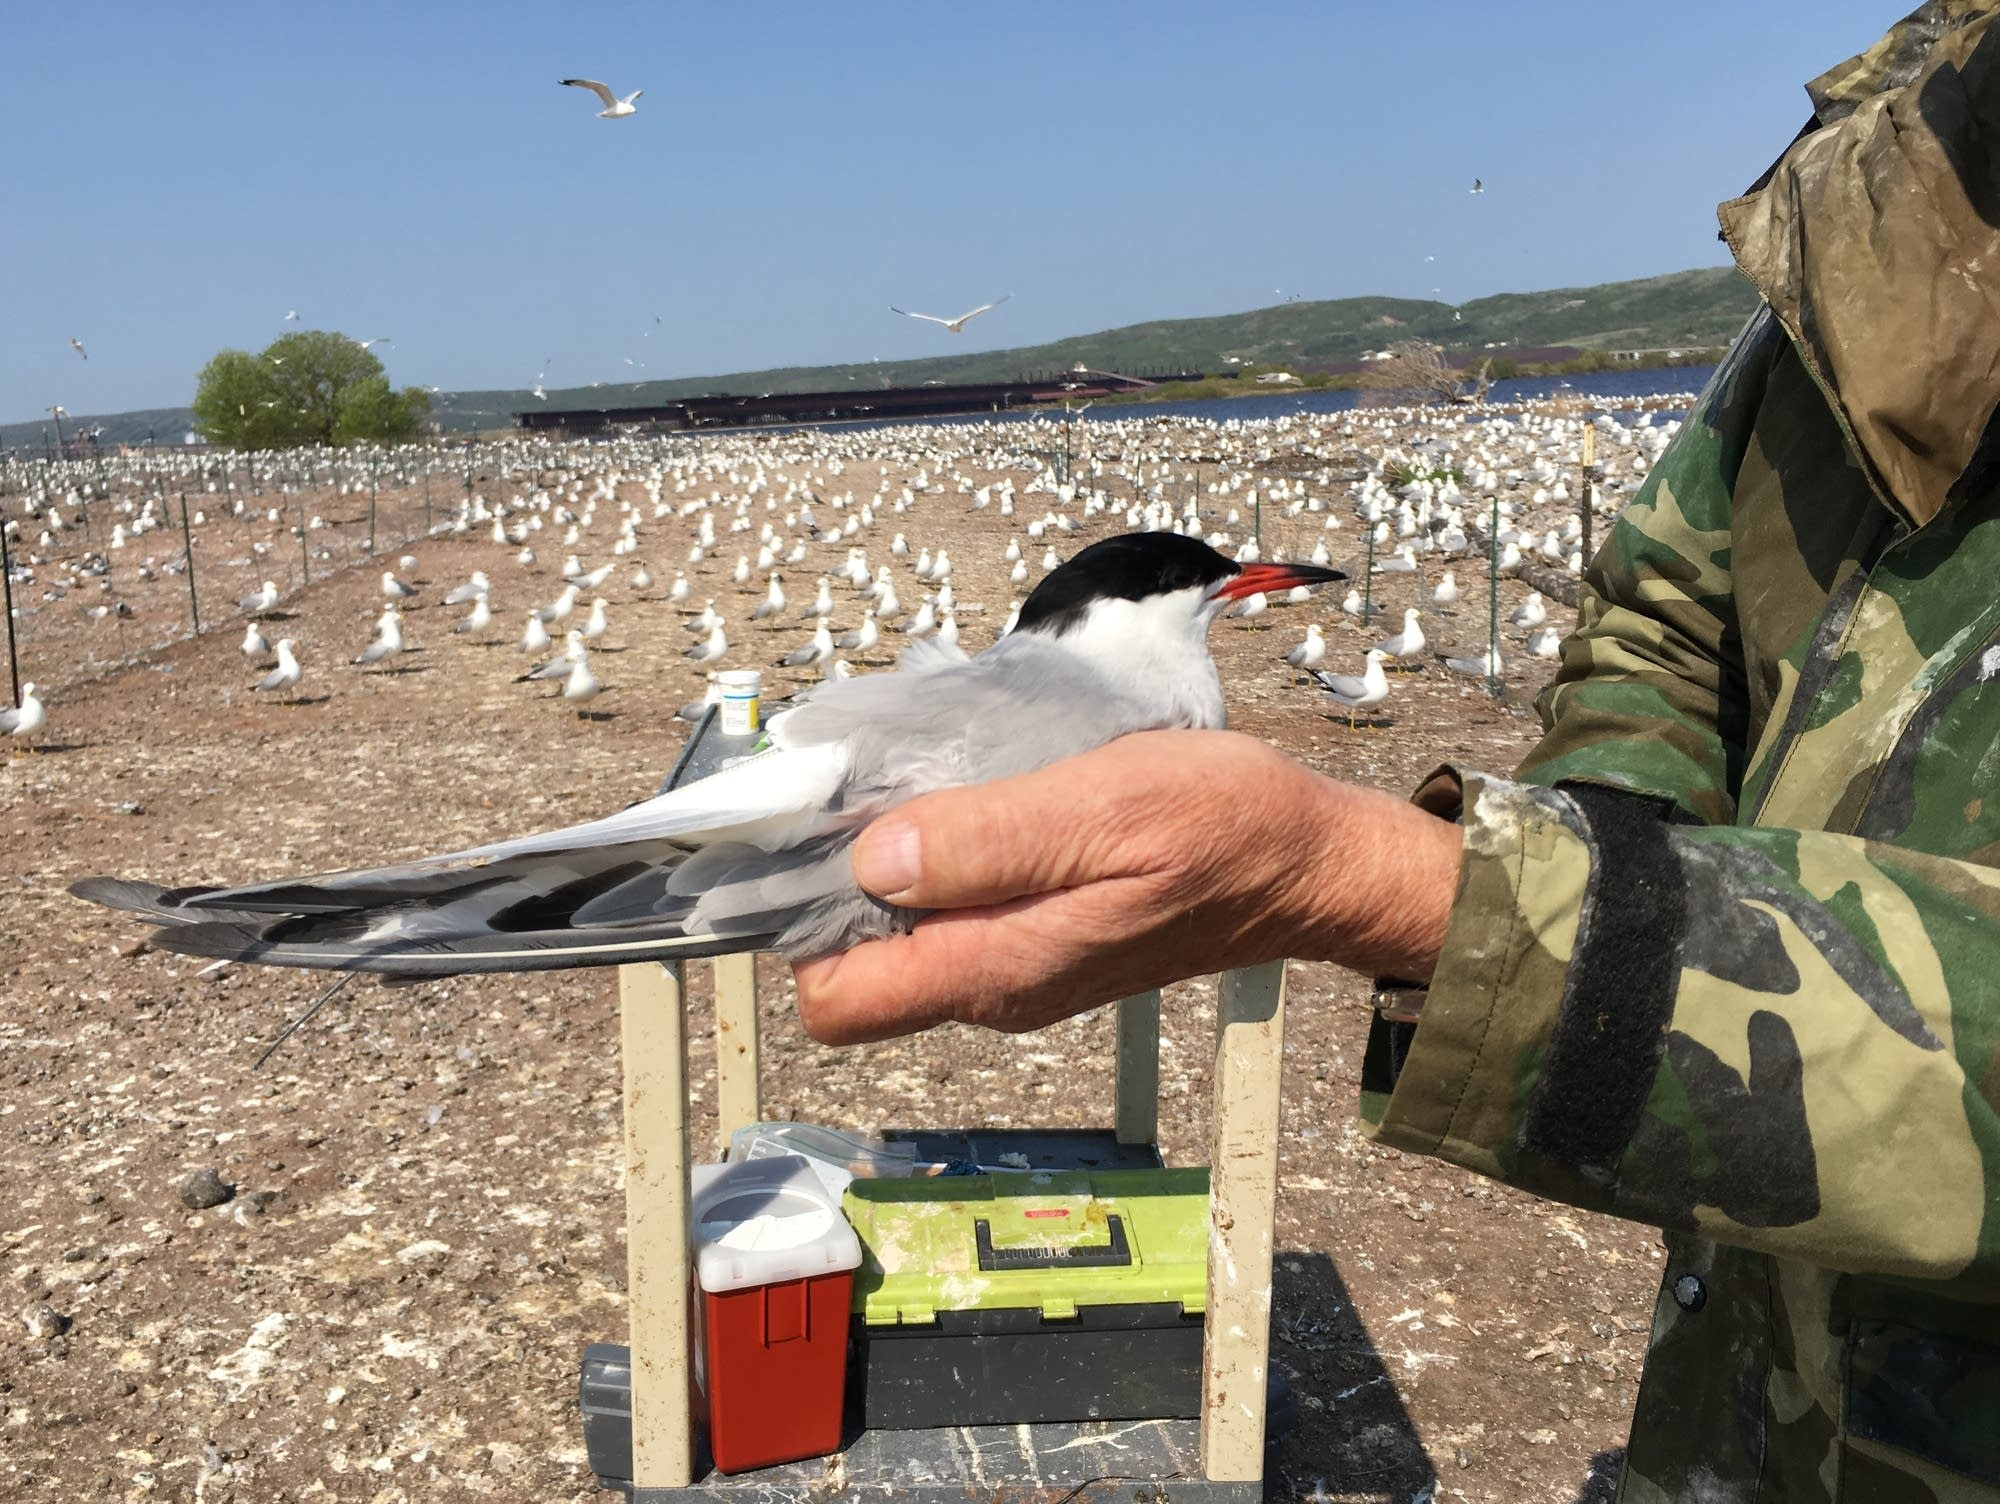 Minnesota DNR volunteer Fred Strand gently holds a common tern